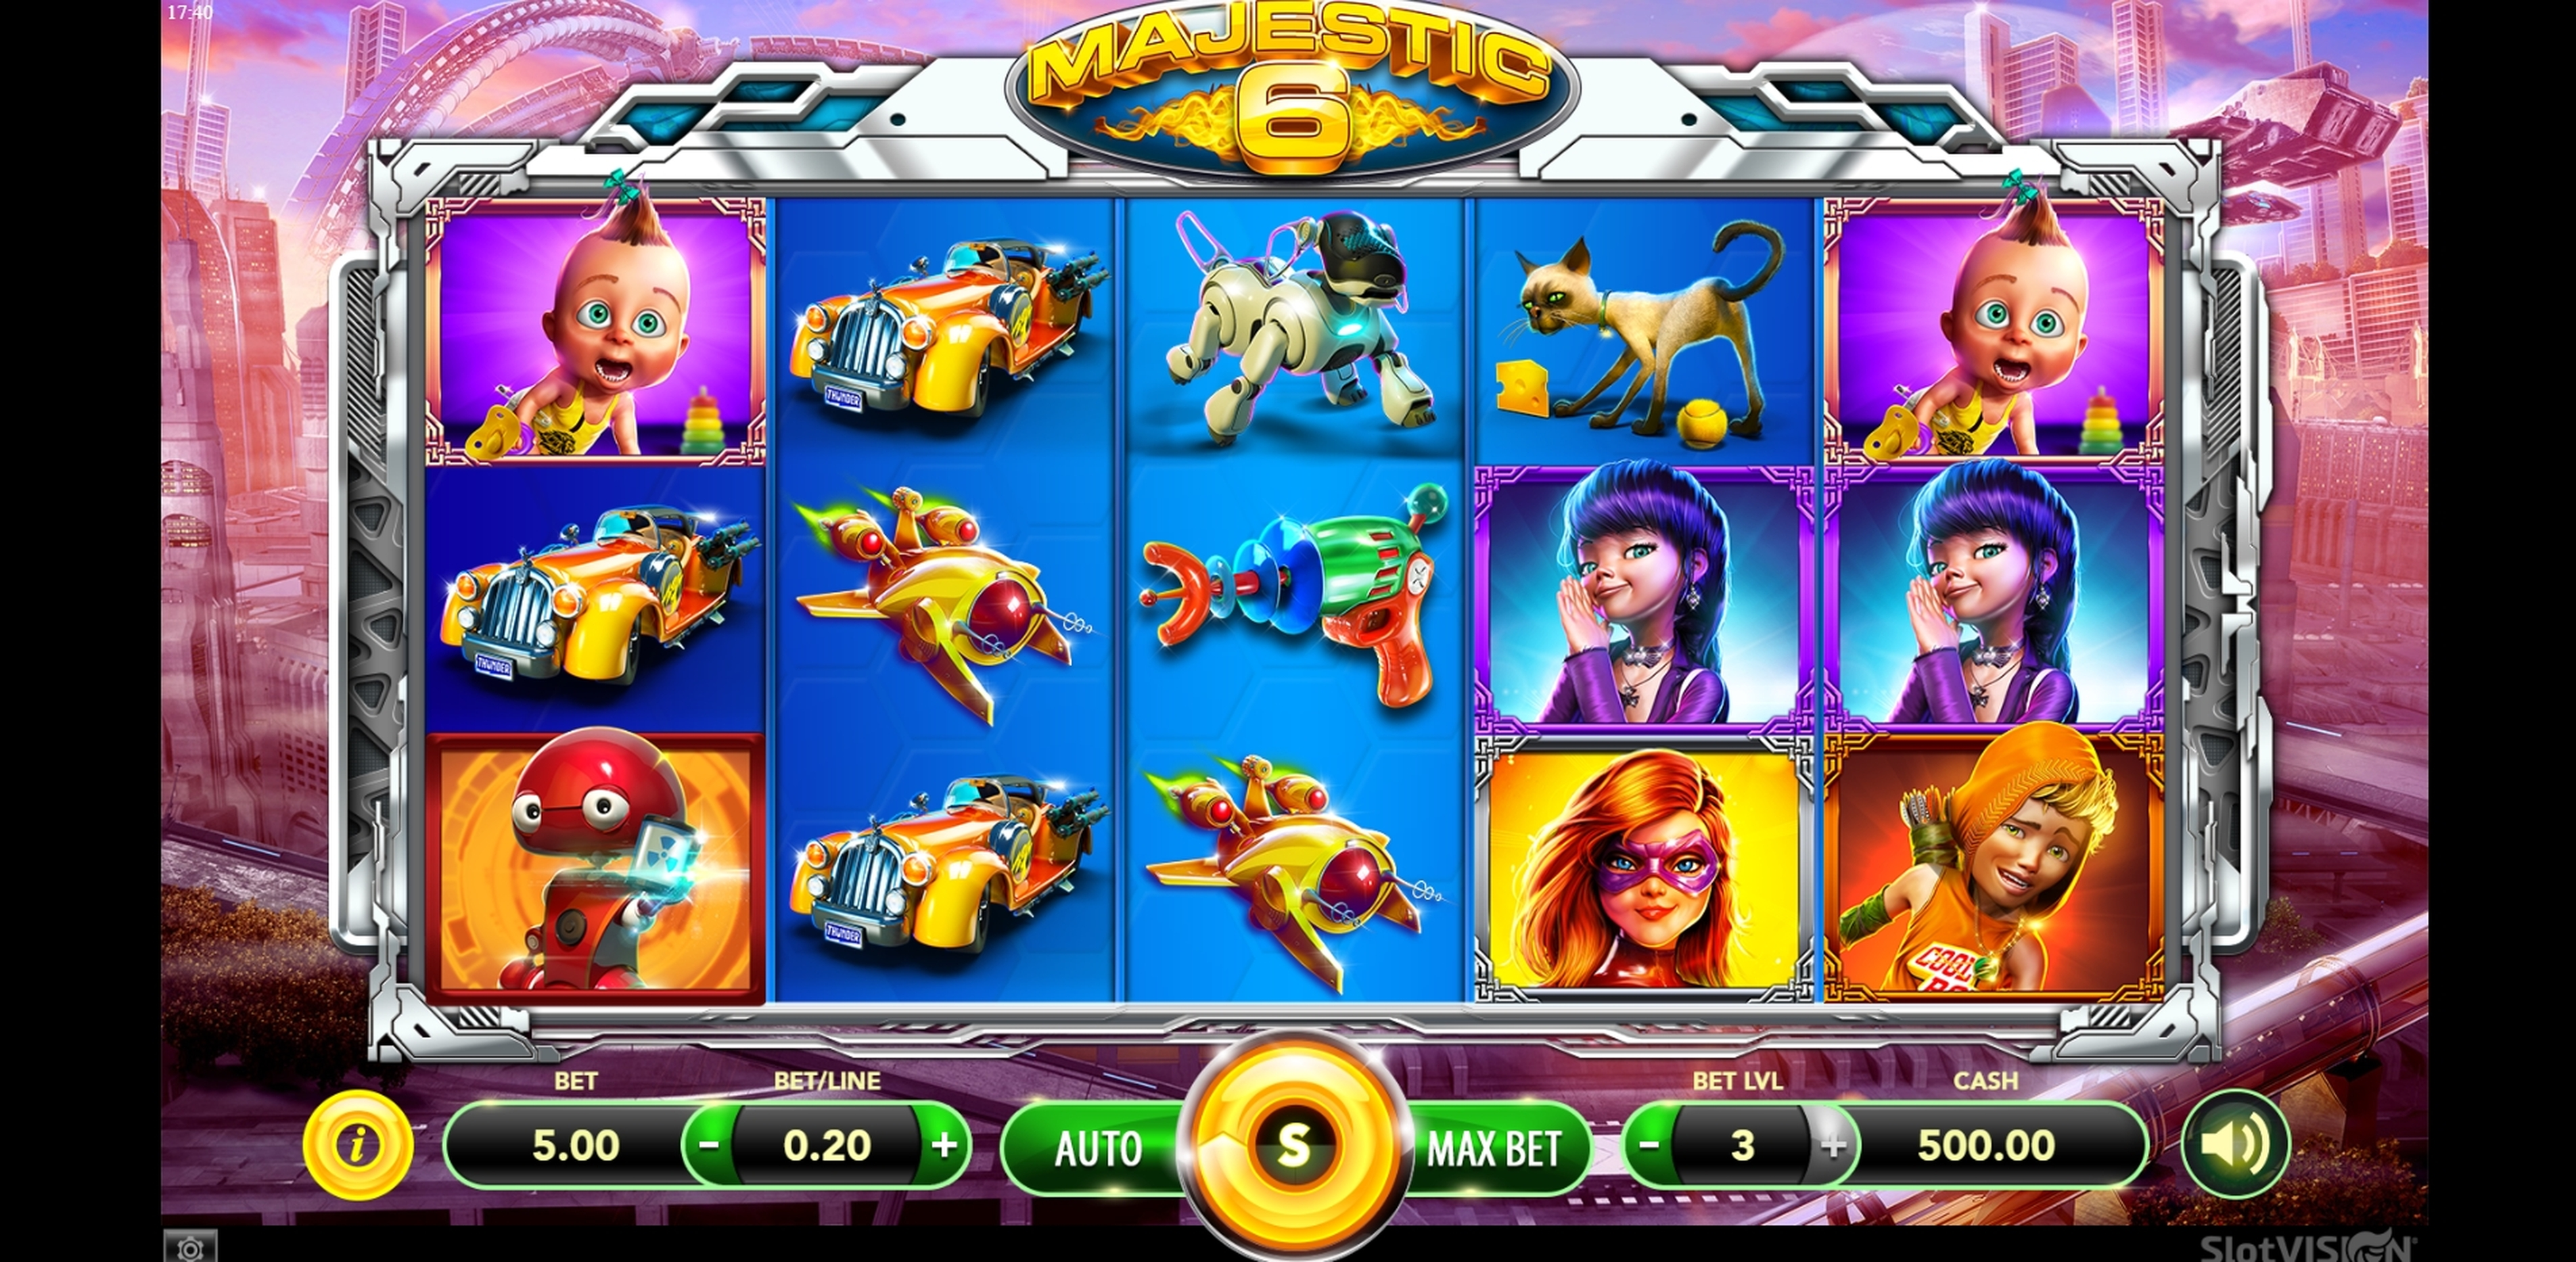 Reels in Majestic 6 Slot Game by SlotVision